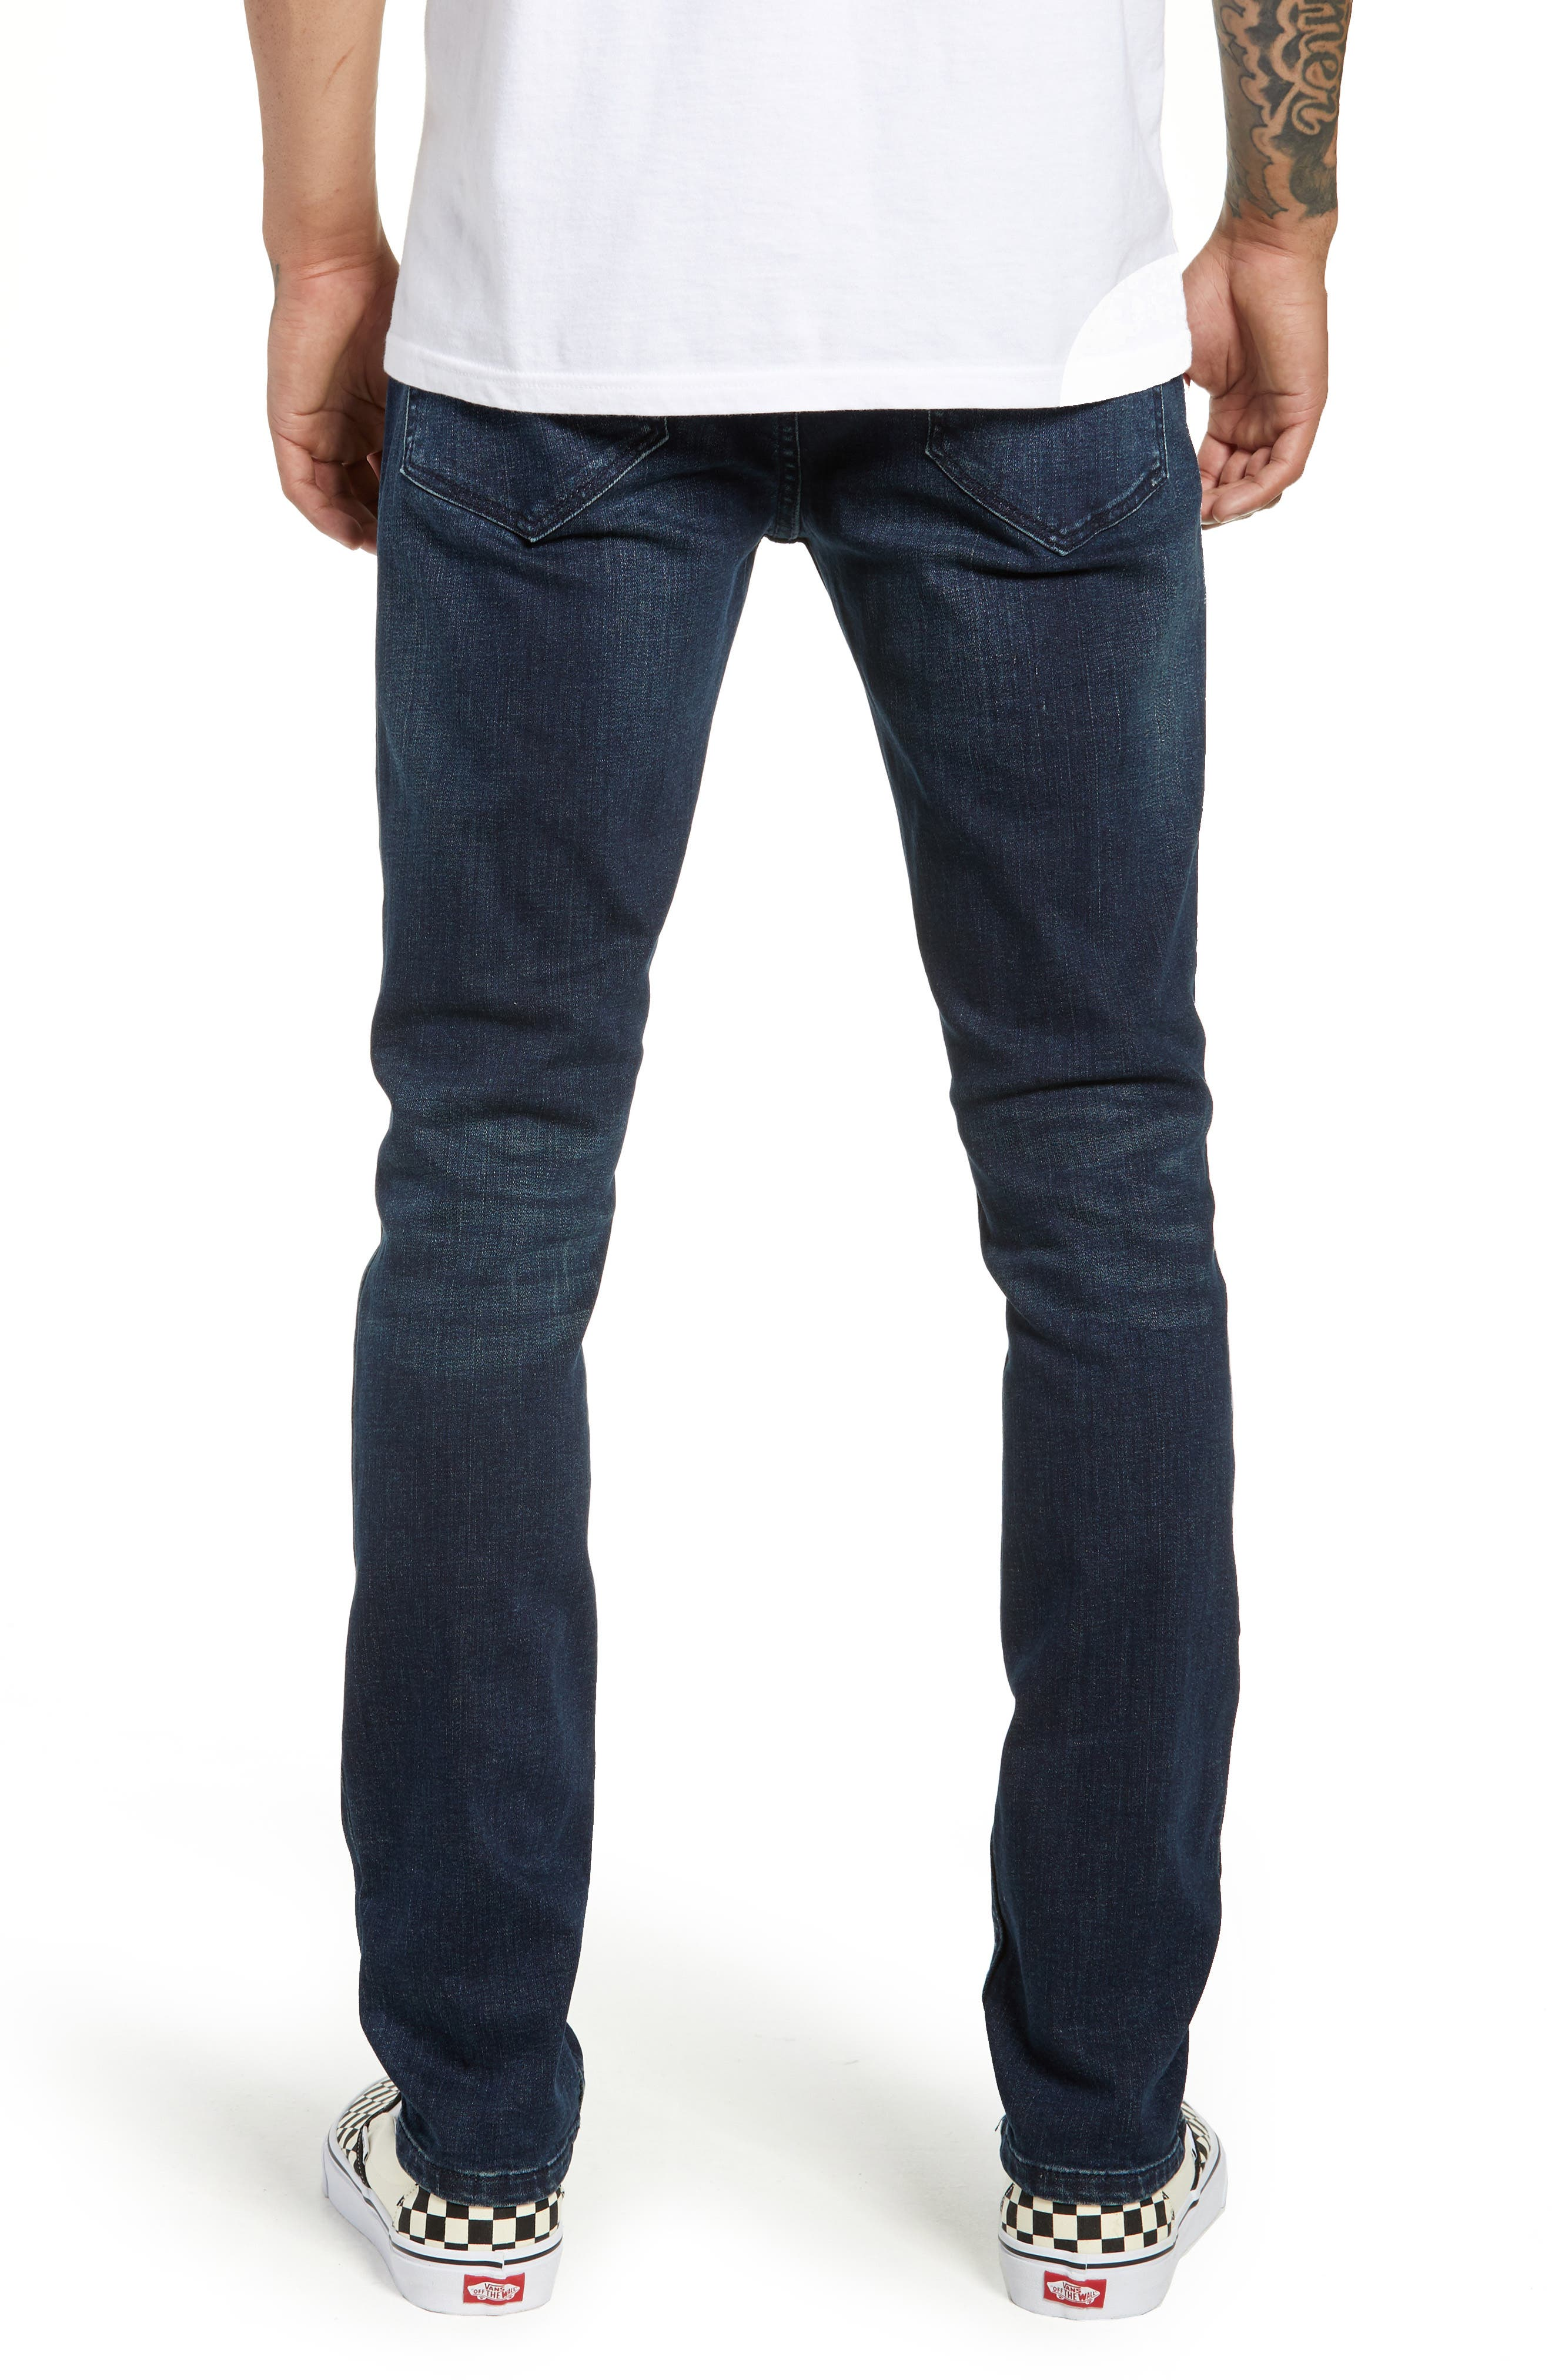 Horatio Skinny Fit Jeans,                             Alternate thumbnail 2, color,                             425